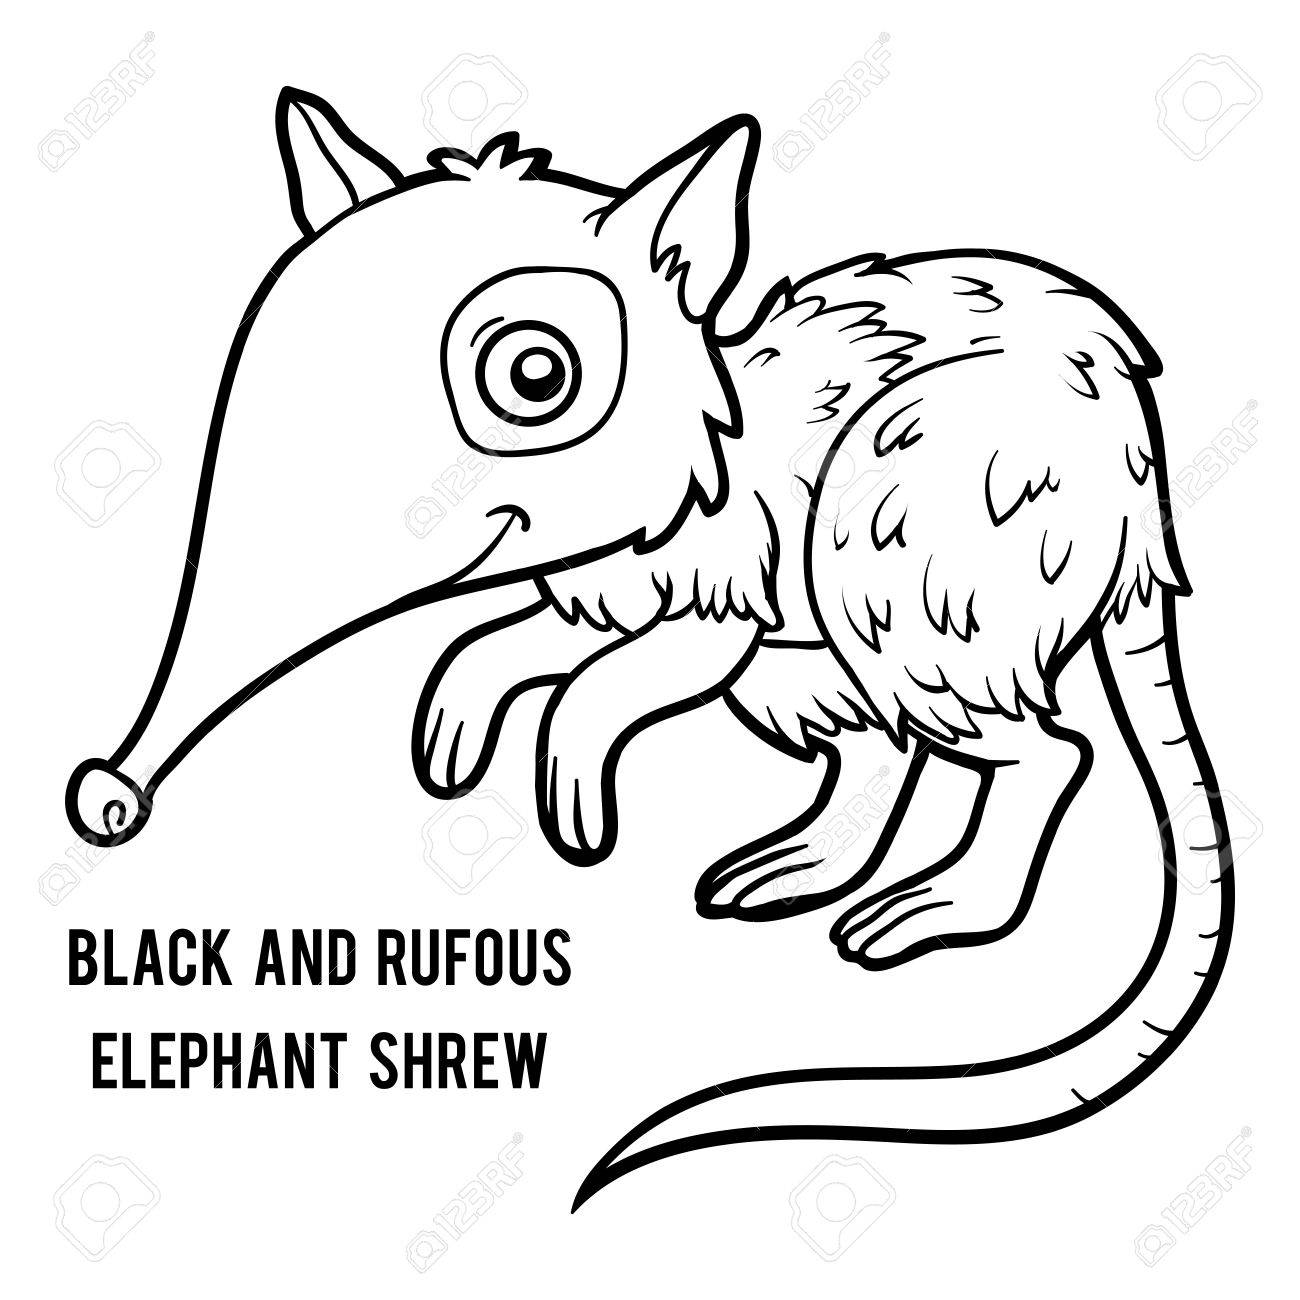 1300x1300 Coloring Book For Children, Black And Rufous Elephant Shrew